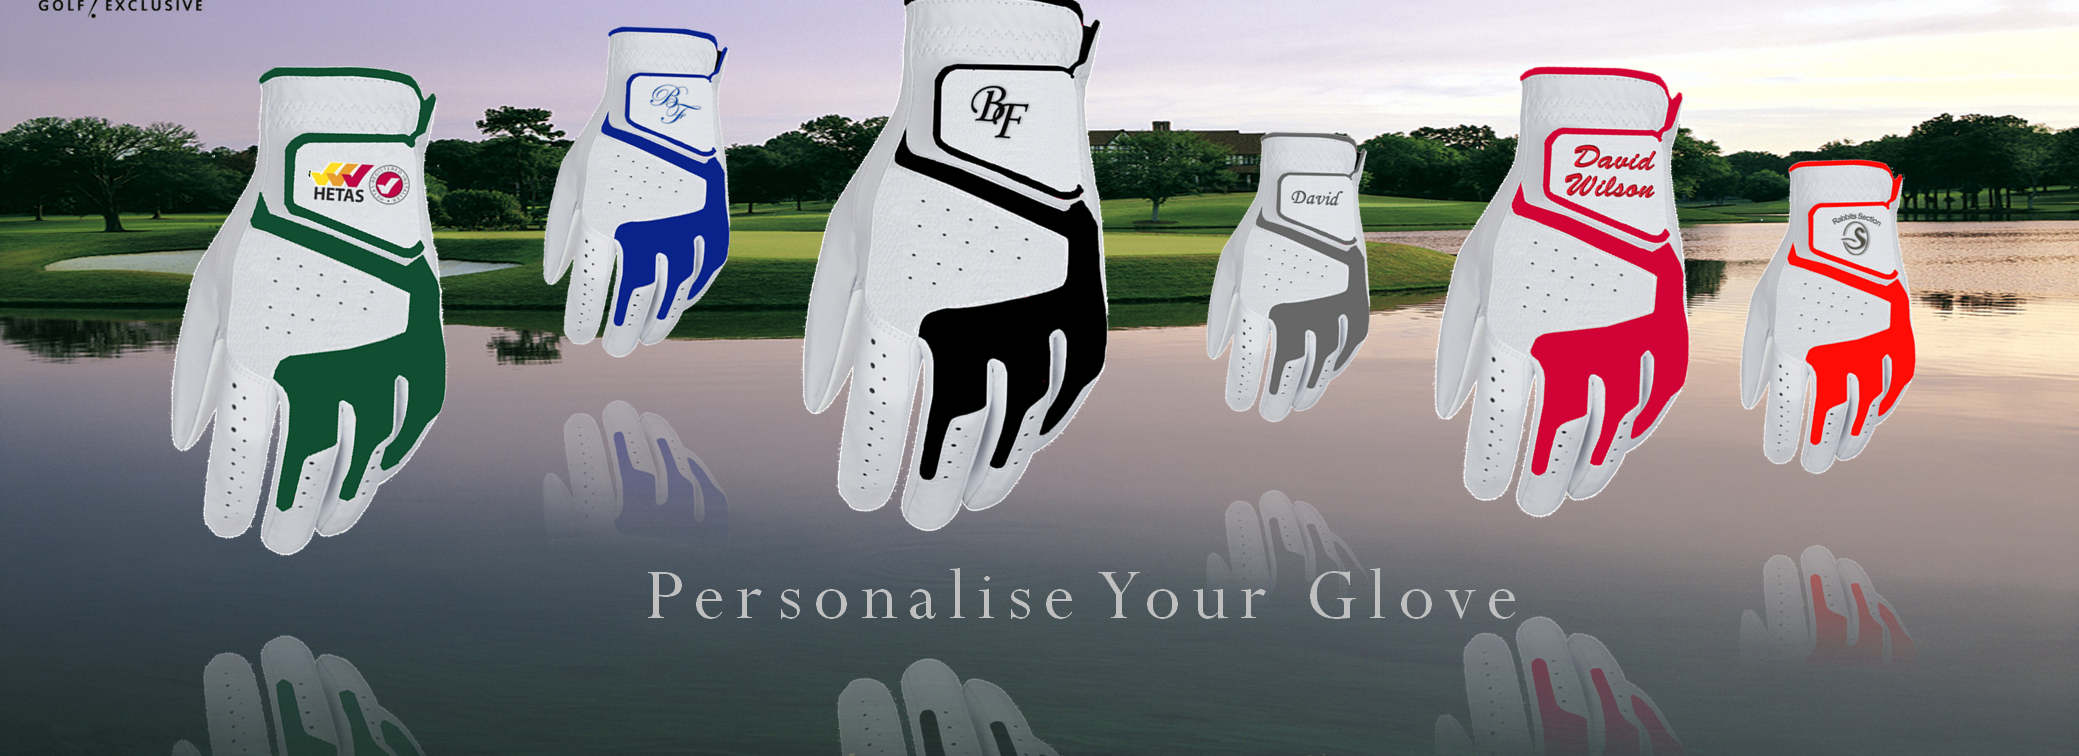 personalise-your-glove-by-golf-exclusive.png